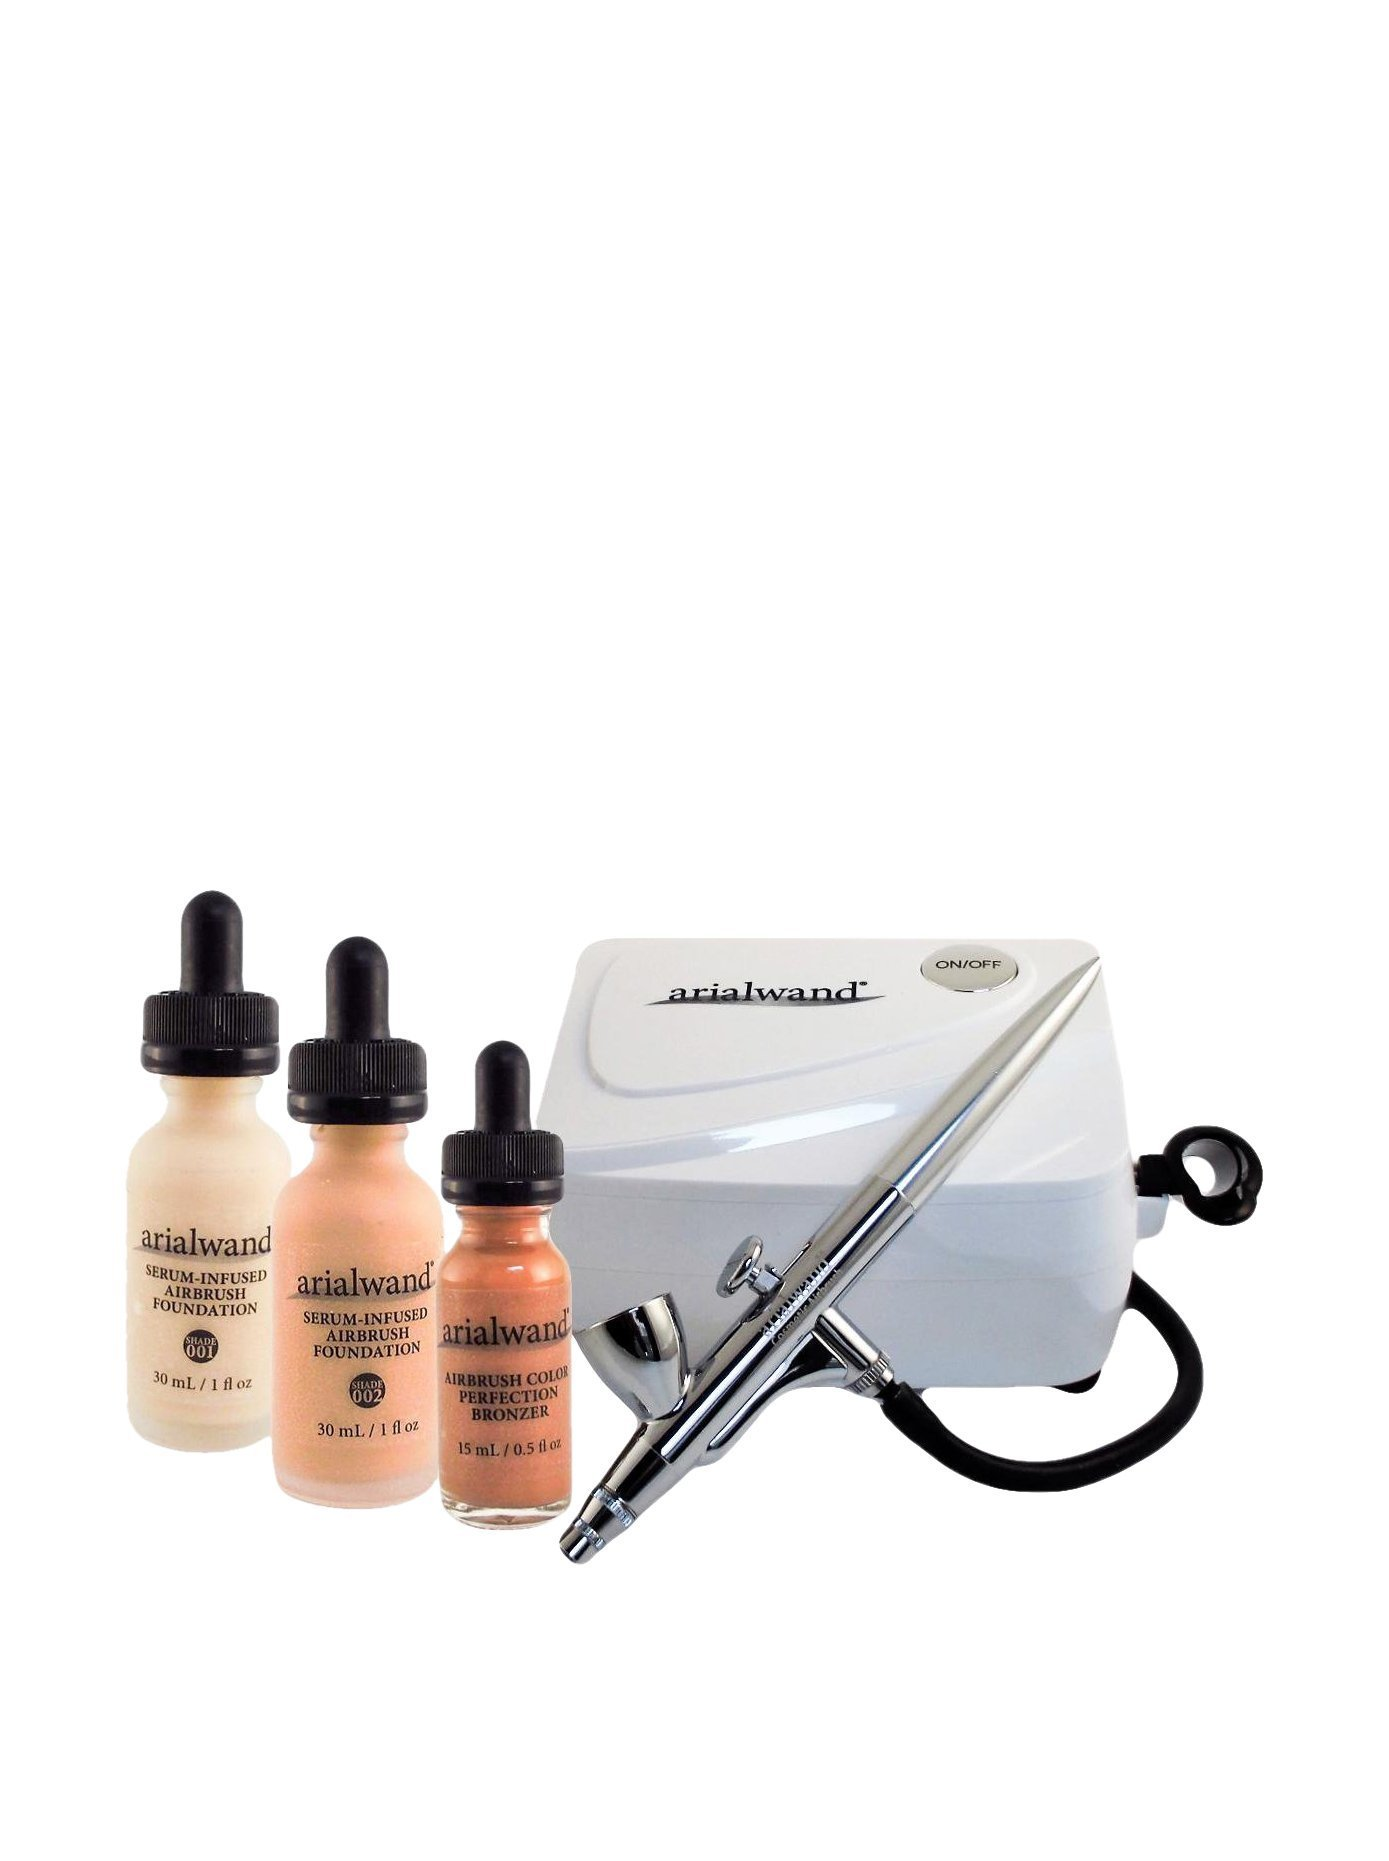 Arialwand Airbrush Kit with Serum Infused Foundation, Fair